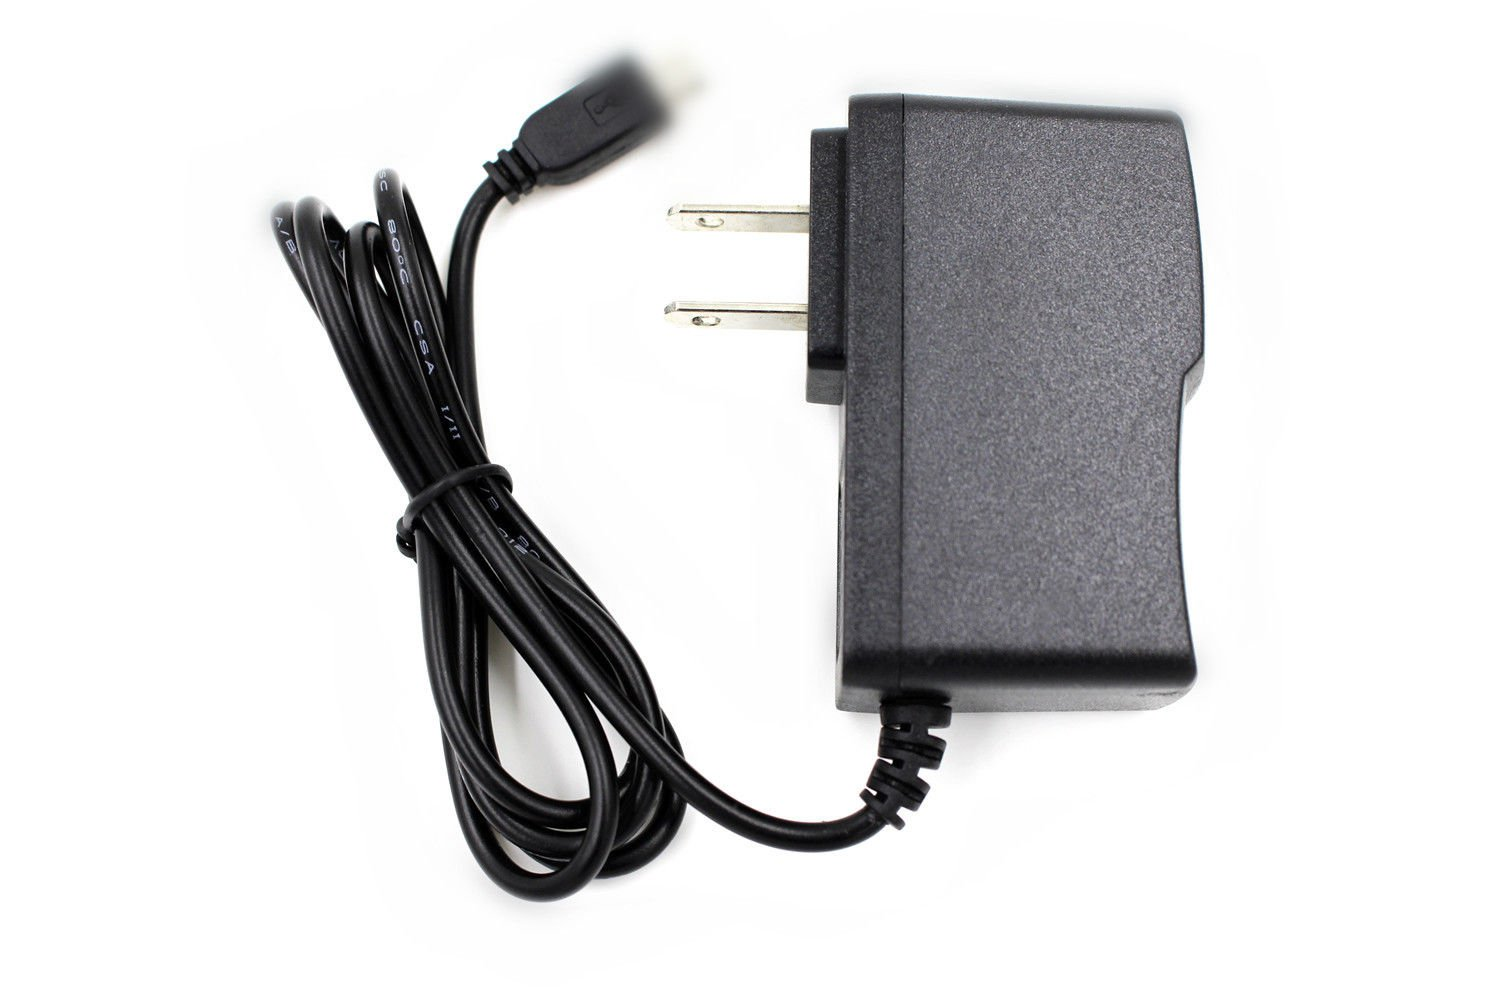 Rca Tablet Laptop Charger - Best Image About Laptop